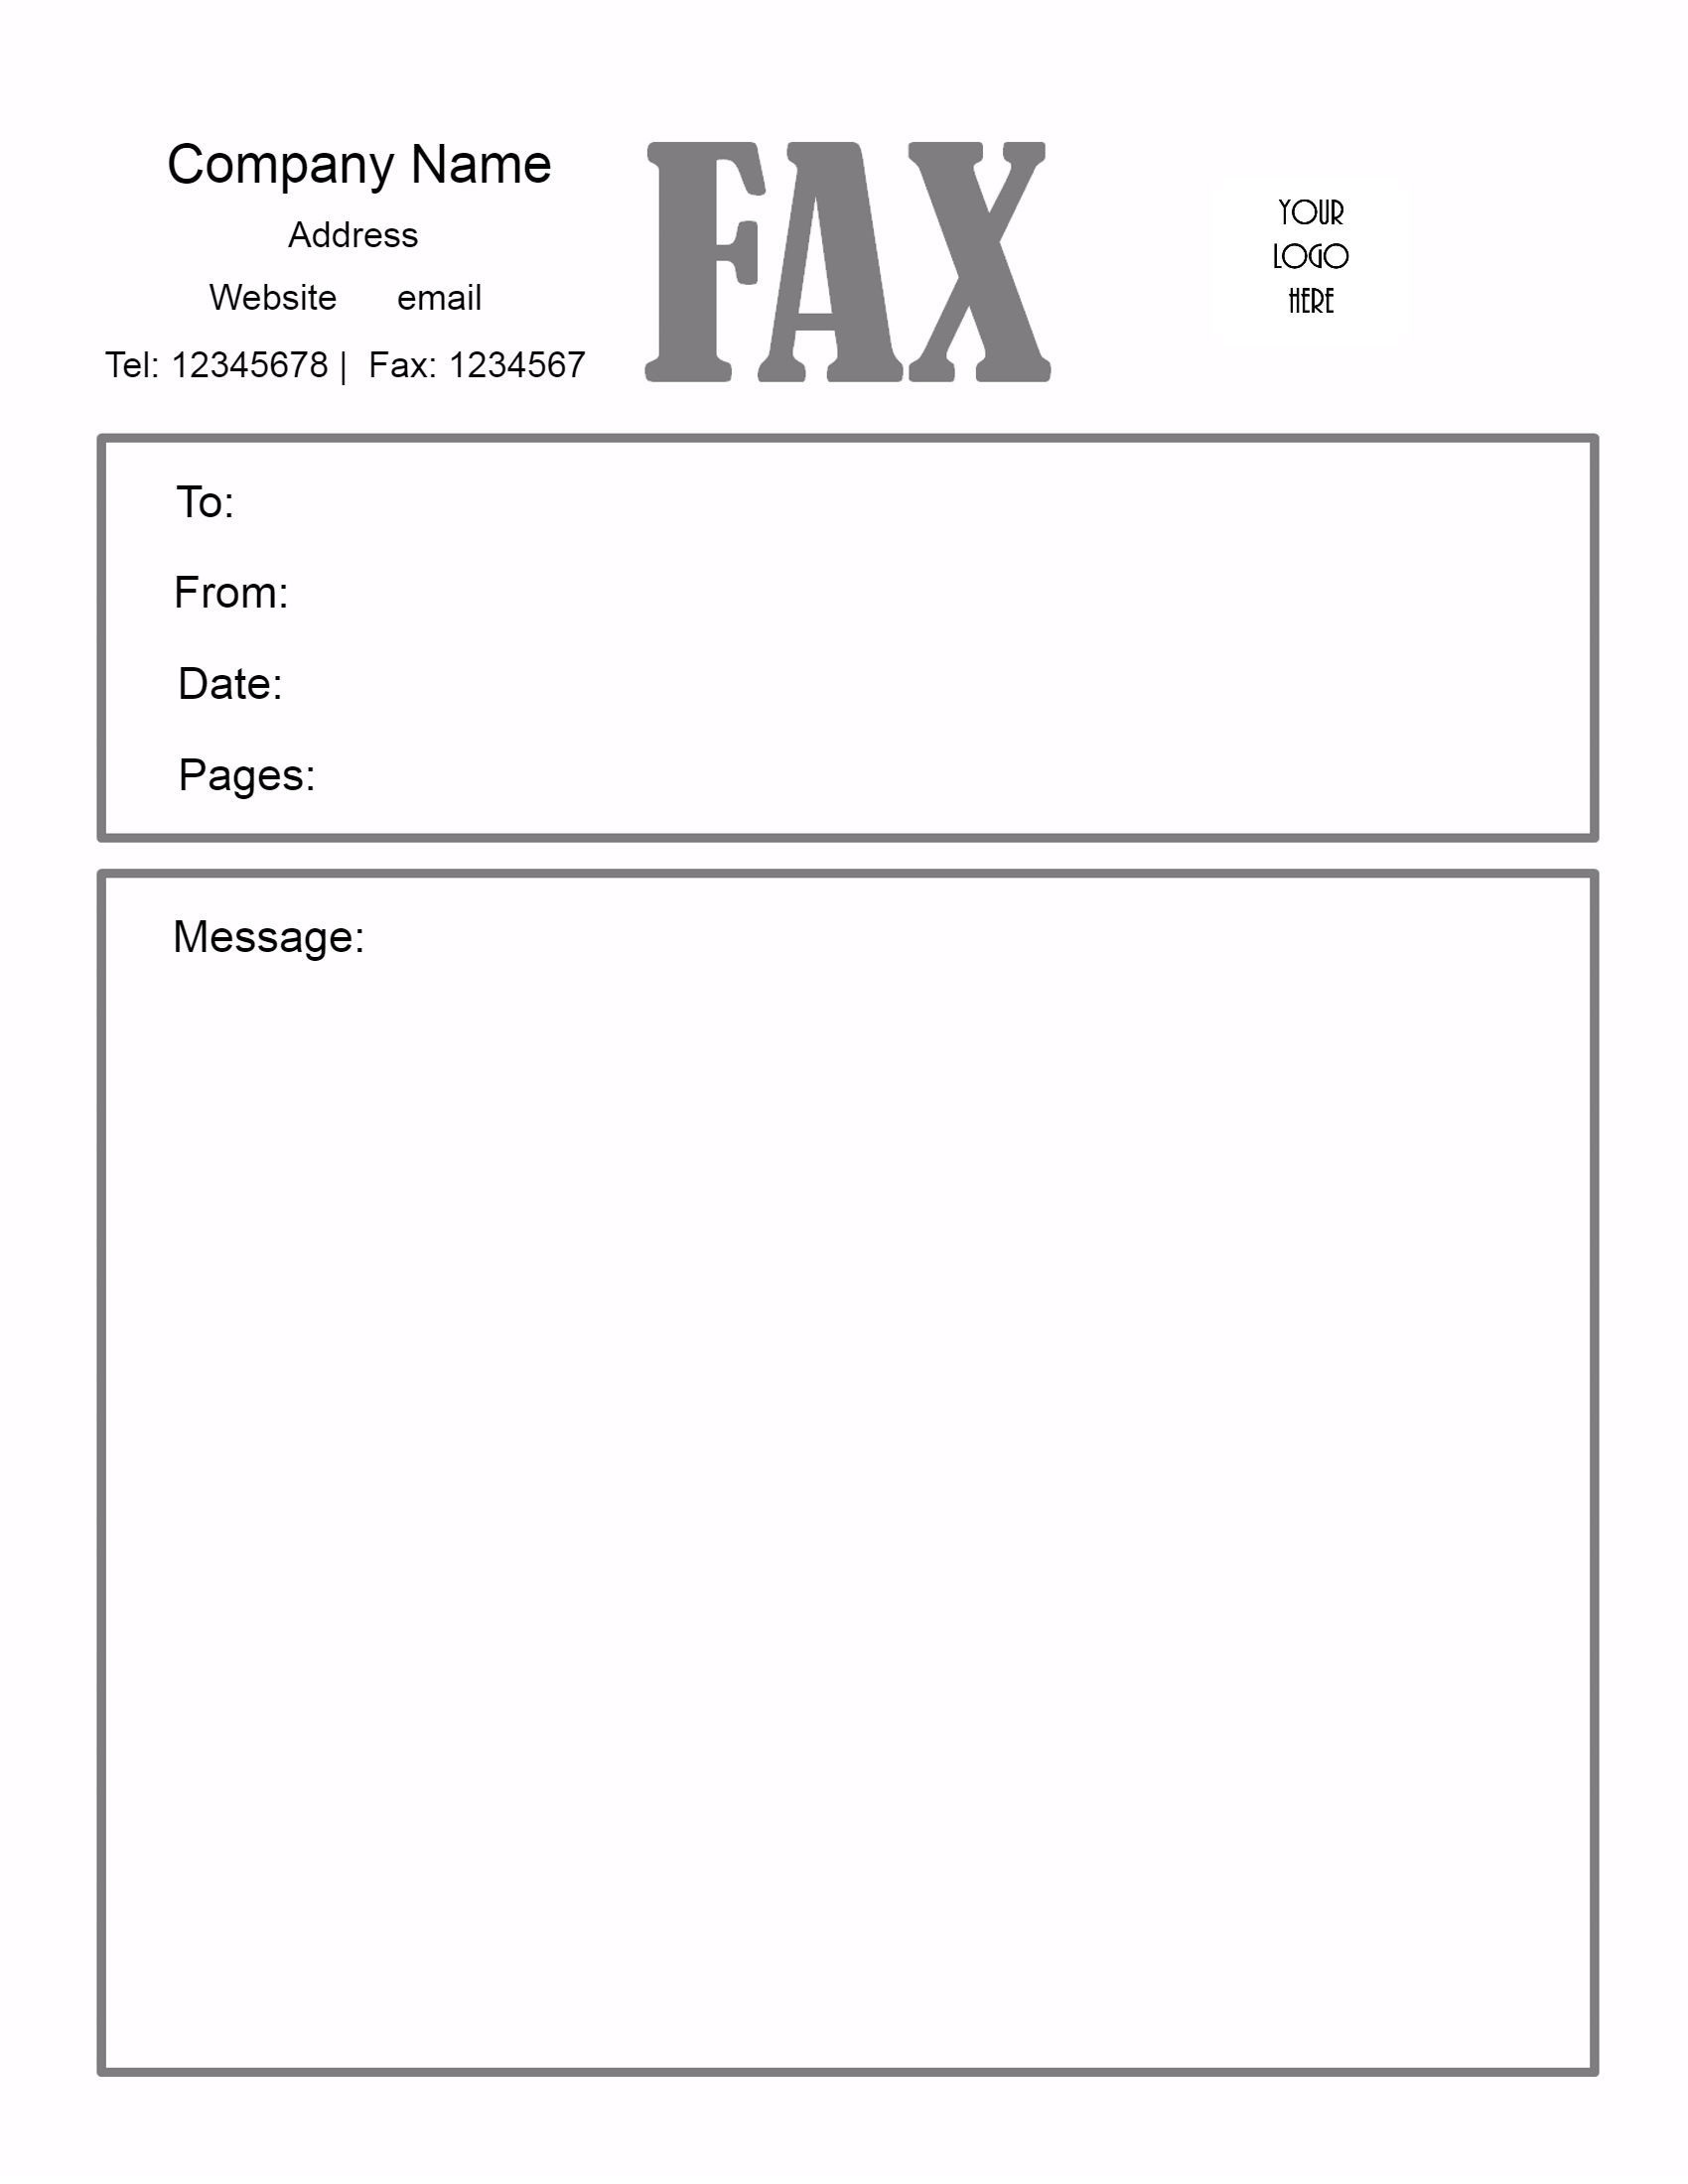 Fax Cover Sheet – Download Fax Cover Sheet, Fax Cover Sheet Template - Free Printable Message Sheets